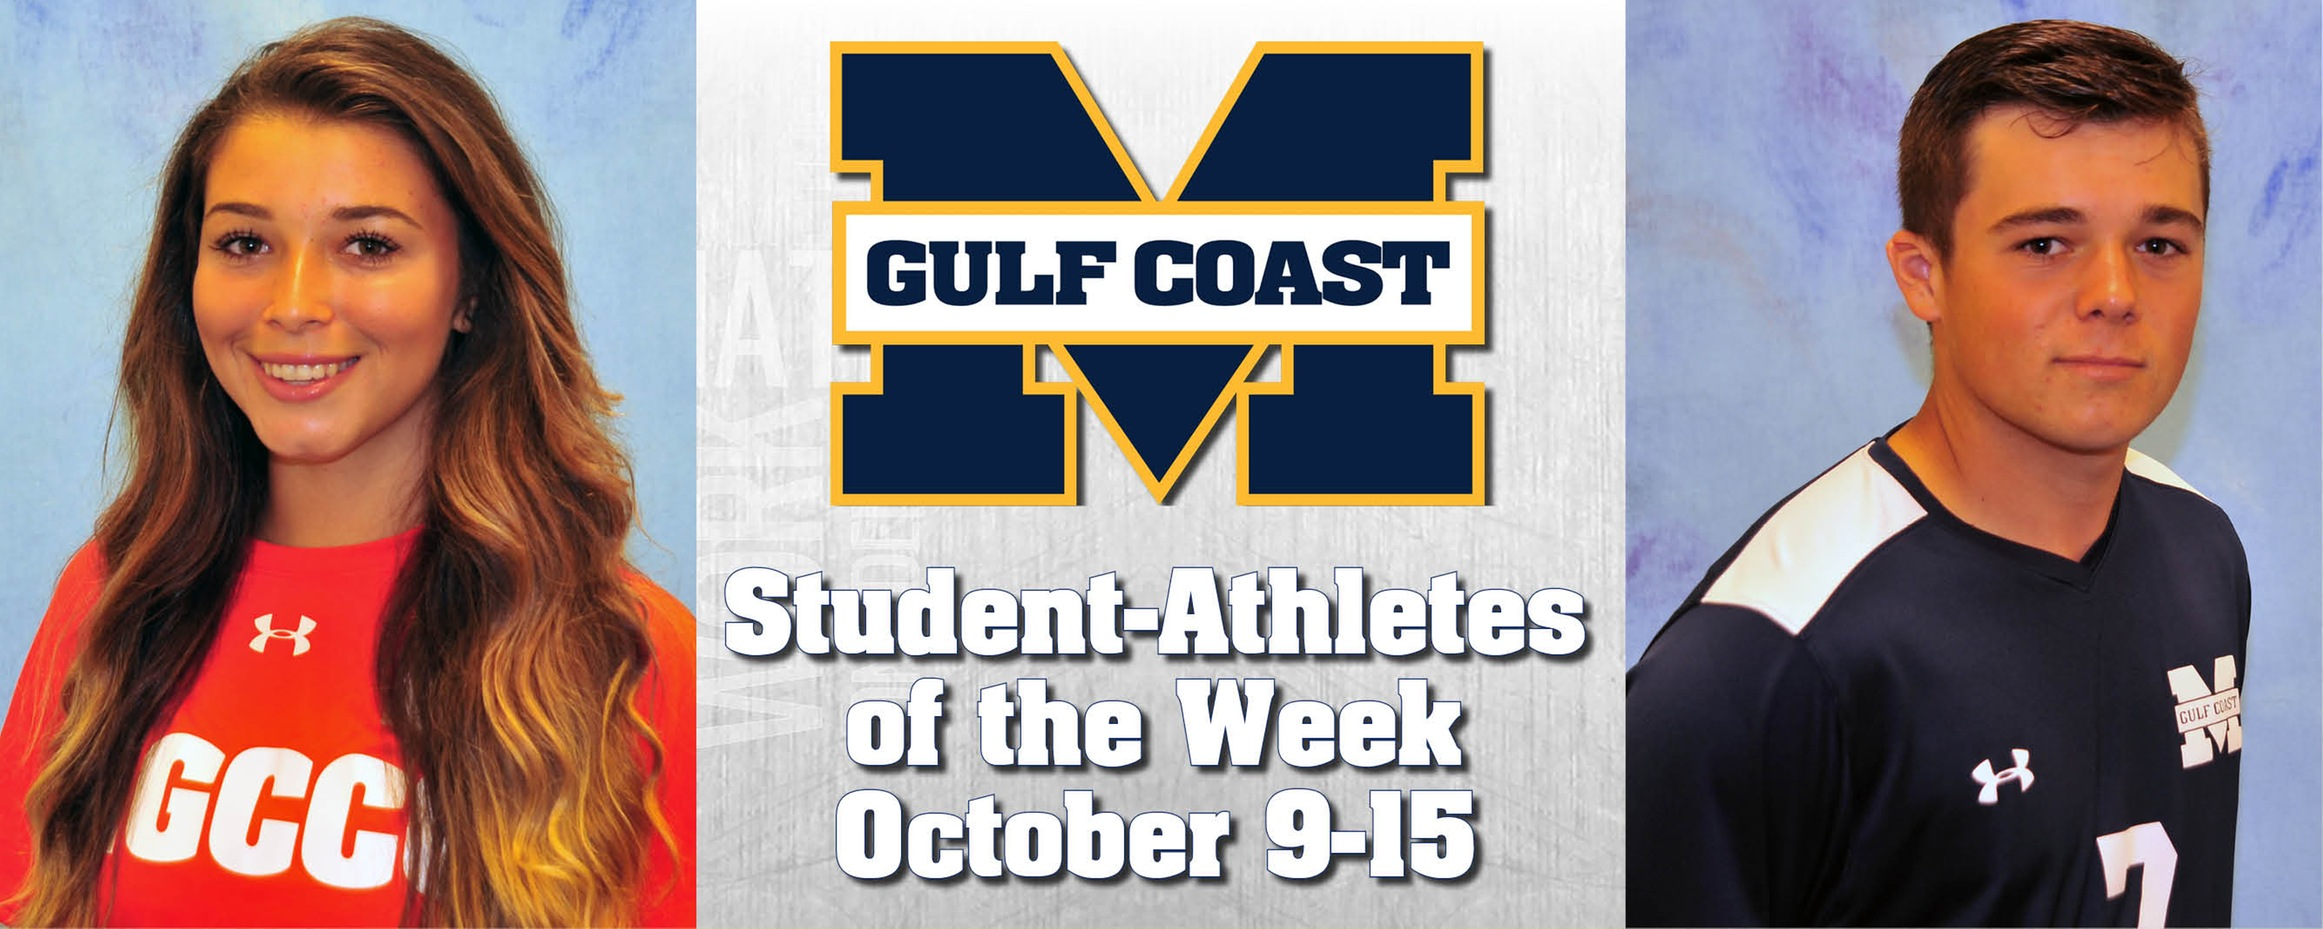 Lott, Hall named MGCCC Student-Athletes of the Week